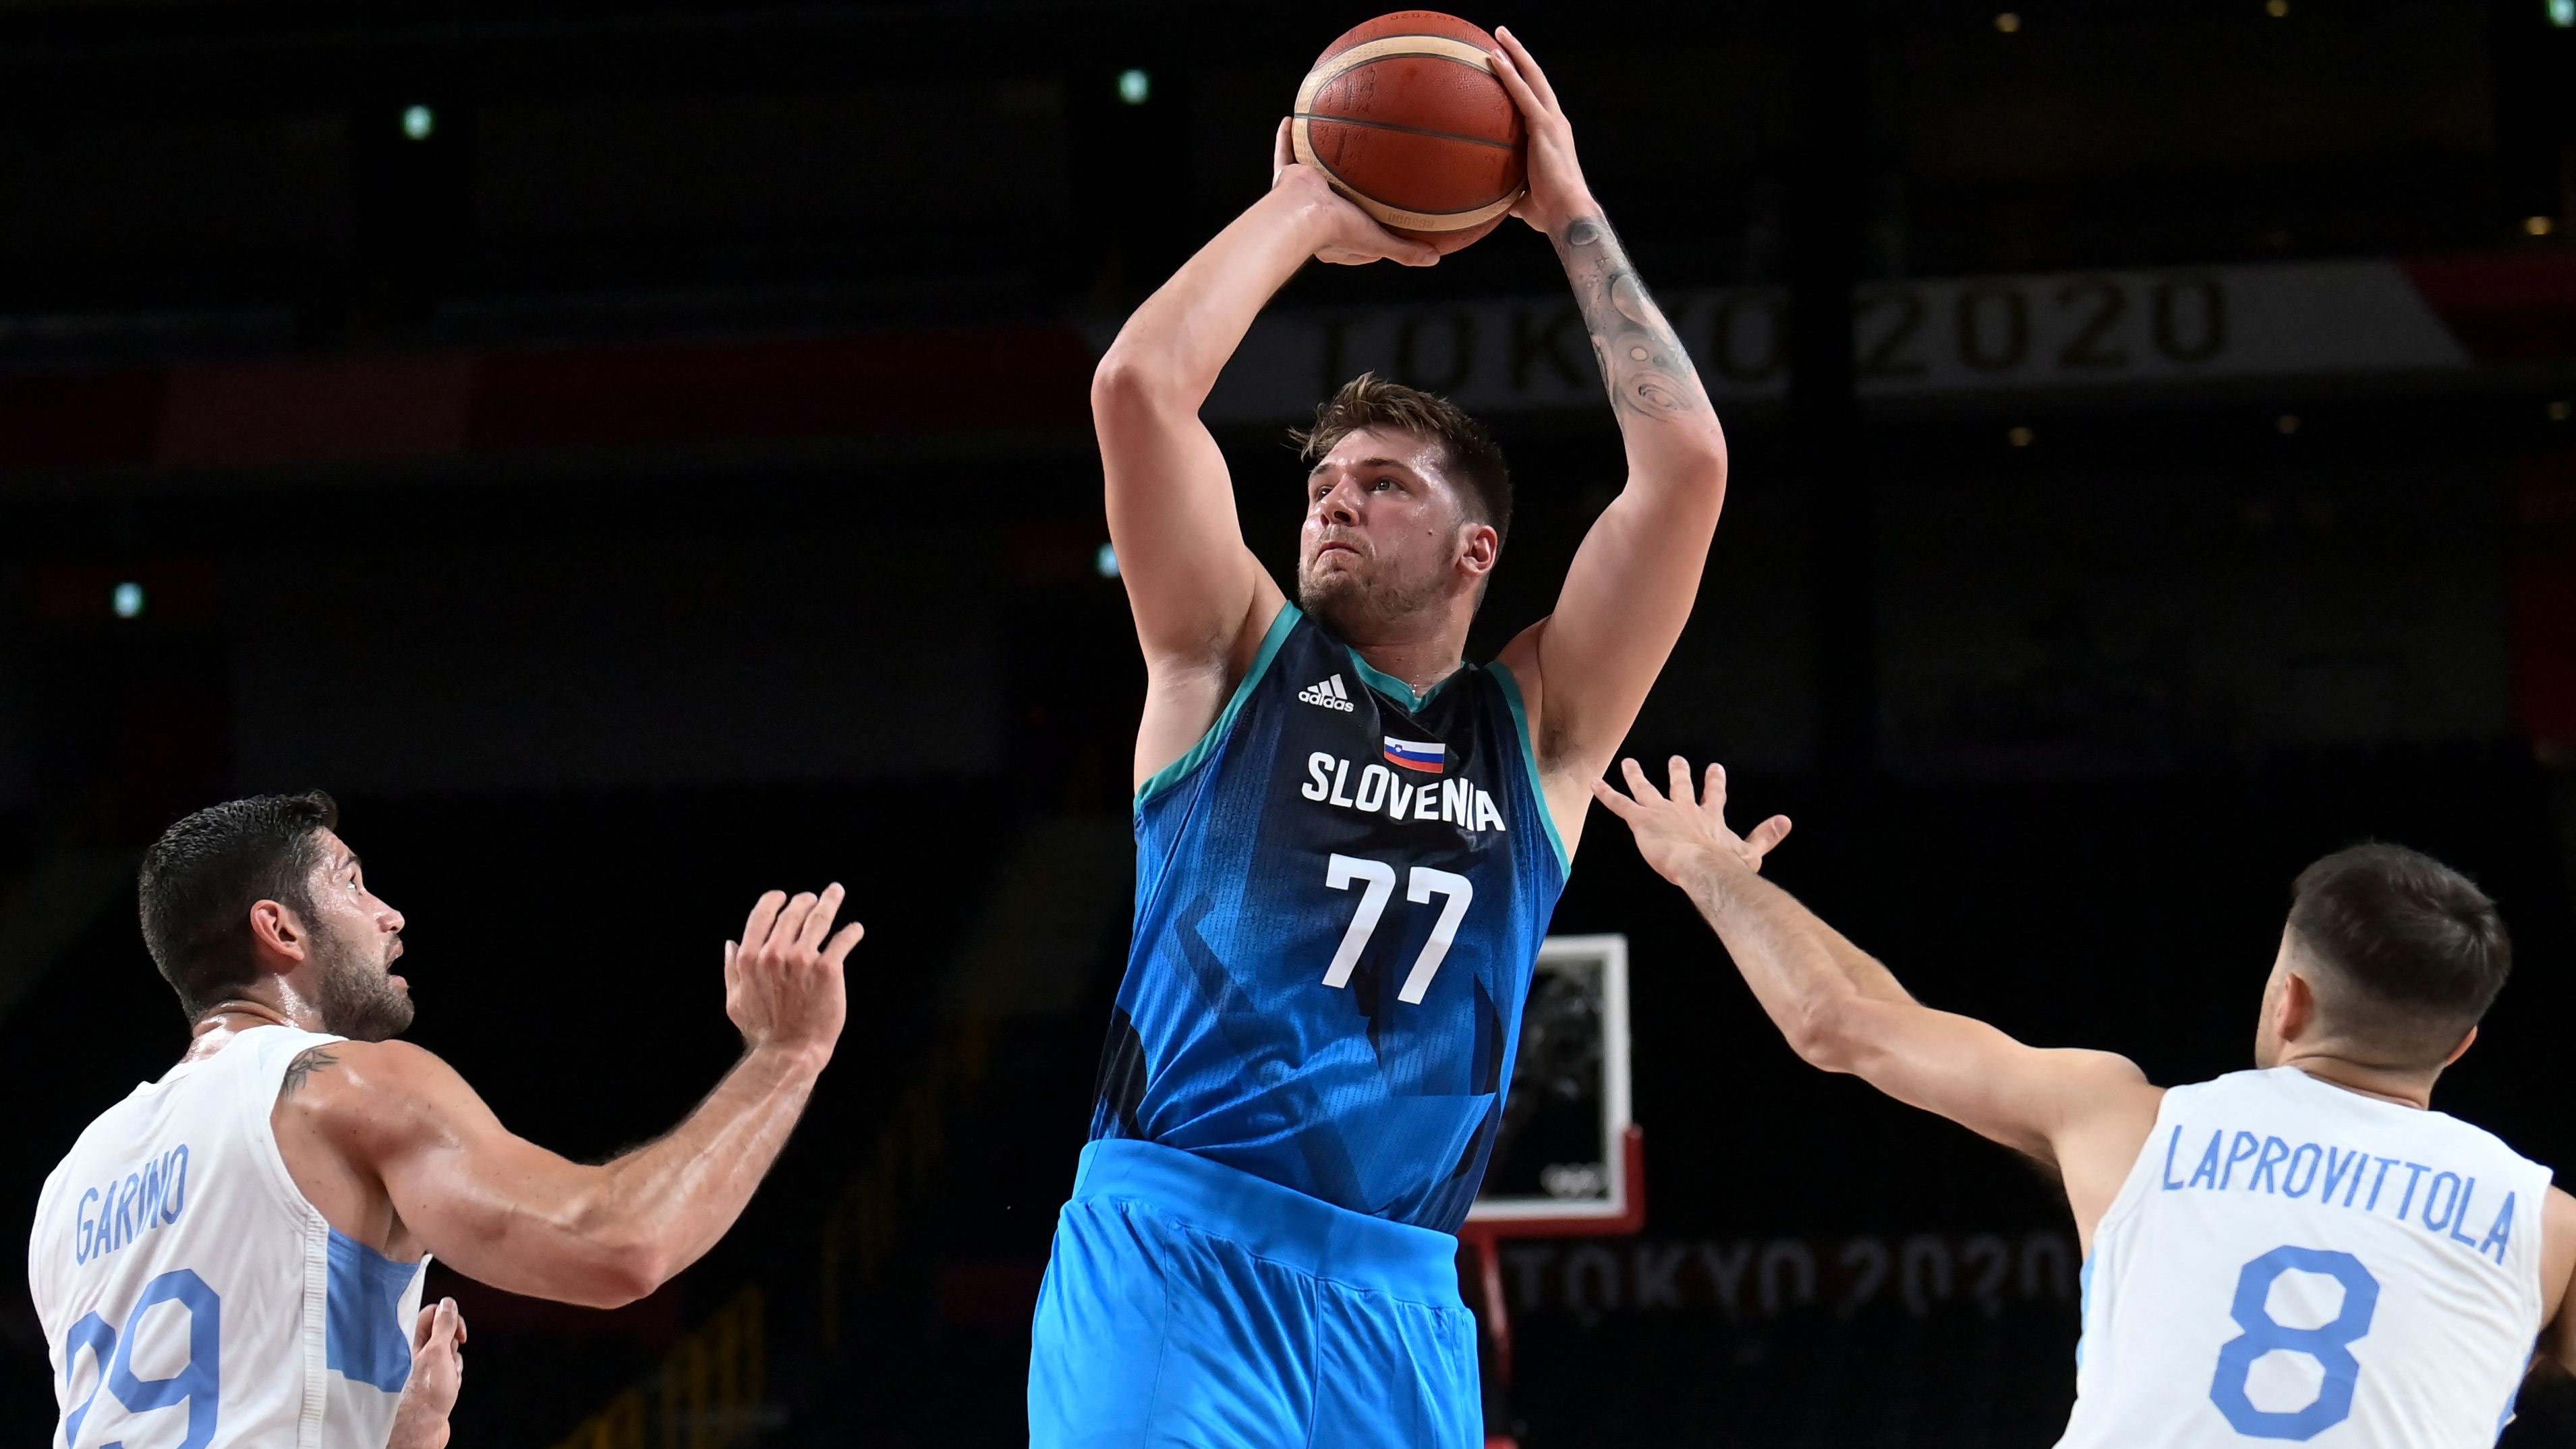 Slovenia's Luka Doncic takes a shot in the preliminary round group C basketball match between Argentina and Slovenia on July 26.